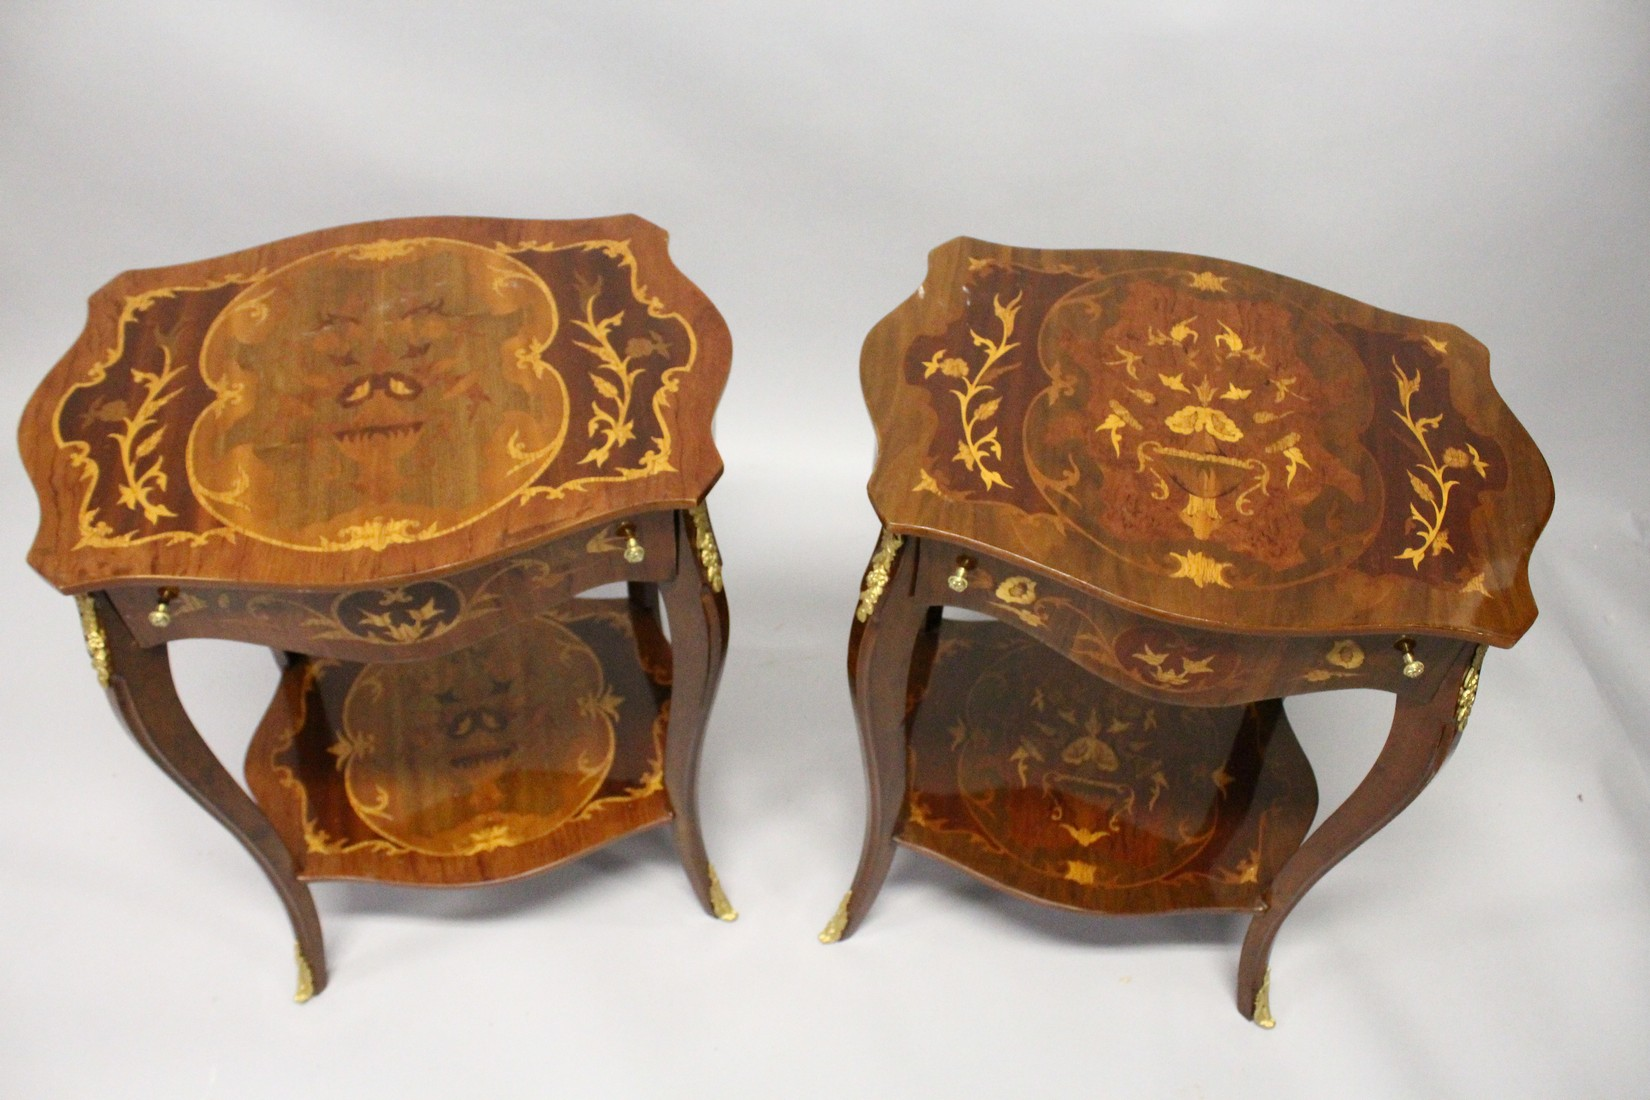 A PAIR OF FRENCH STYLE MARQUETRY INLAID TWO TIER SINGLE DRAWER SIDE TABLES, with cabriole legs 1ft - Image 2 of 2